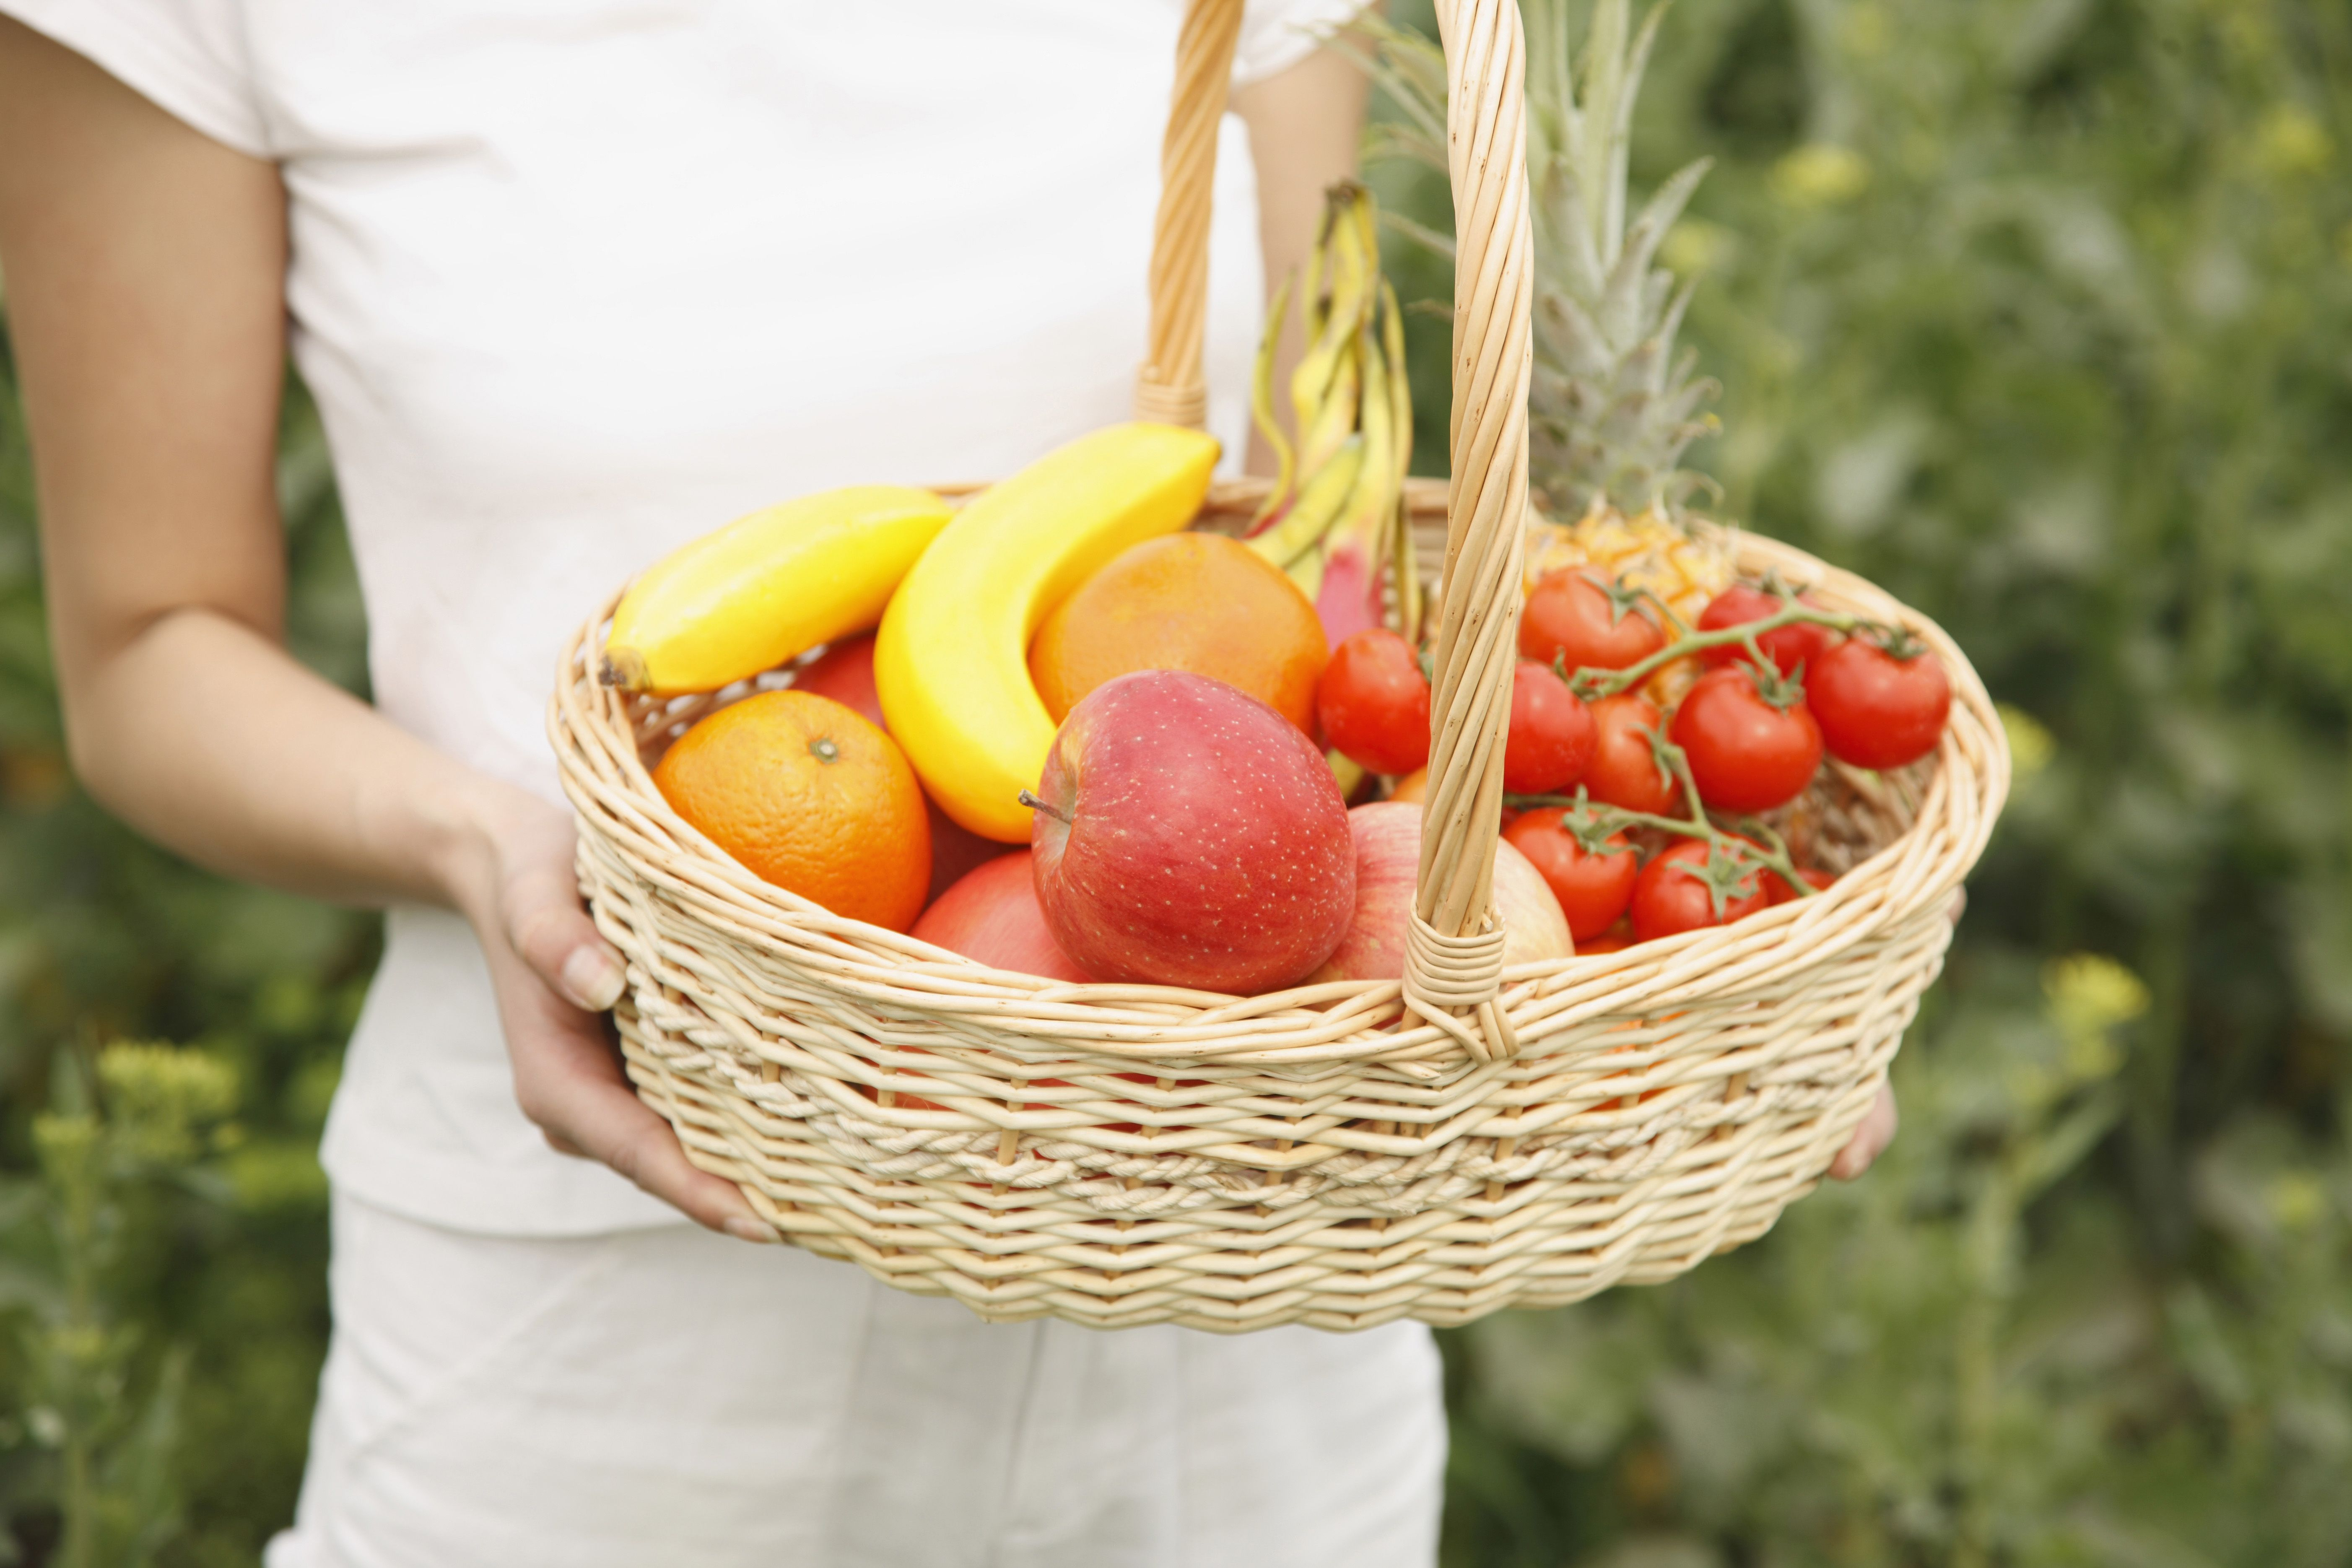 A woman in a white shirt and shorts carries a wicker basket with both hands. In the basket, there is an assortment of produce including oranges, apples, bananas, pineapples, and small tomatoes.